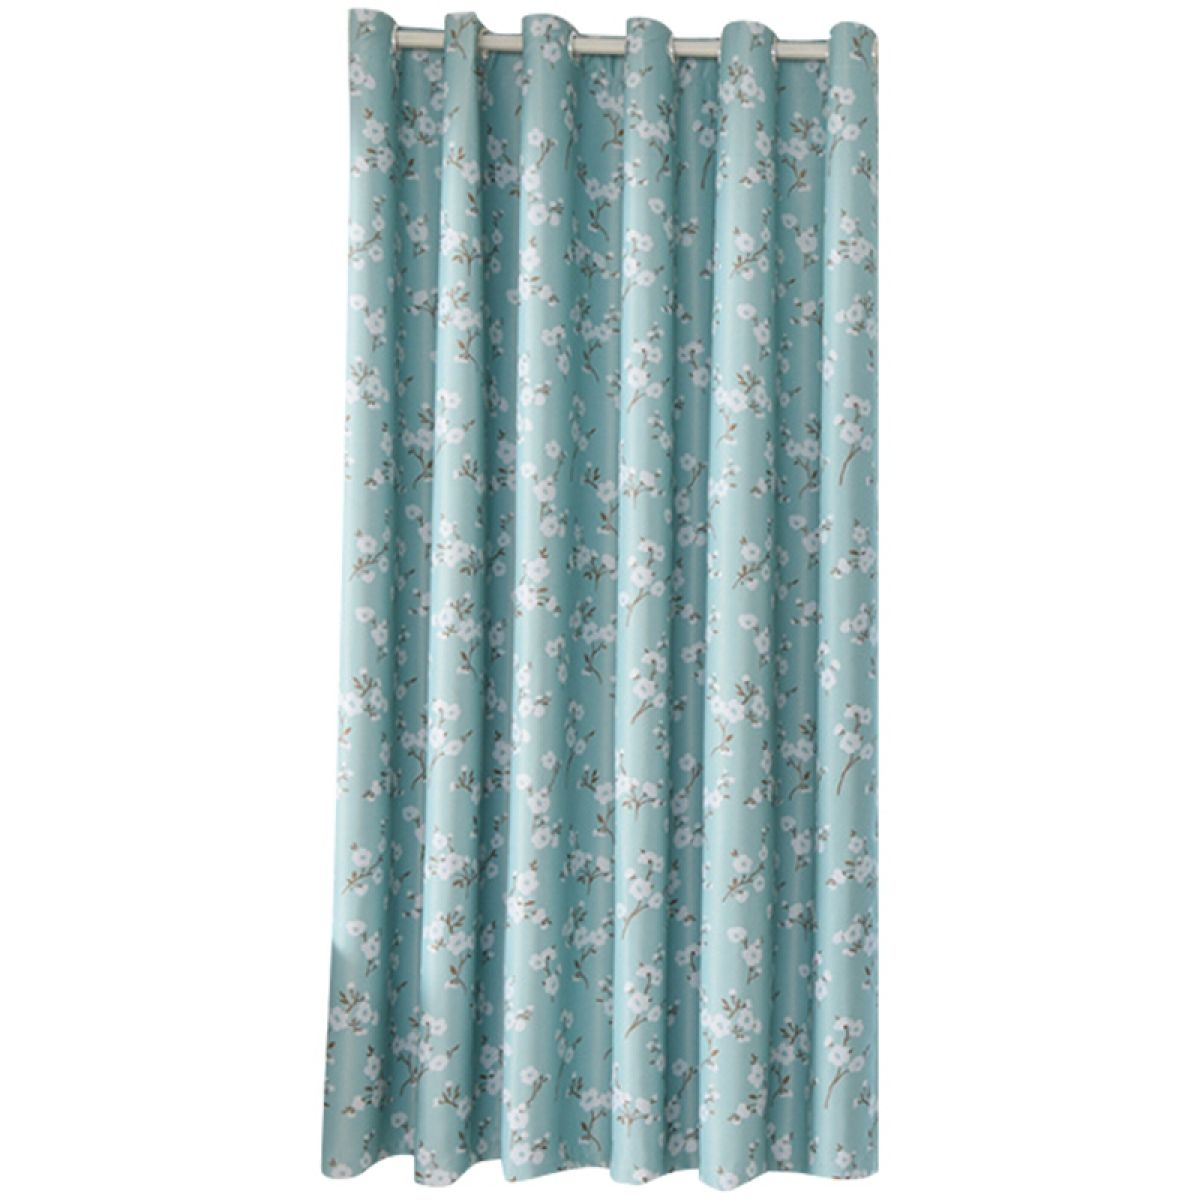 Kapok Printed Blackout Curtain For Living Room Bedroom Modern Window Curtain Home Decoration Lazada